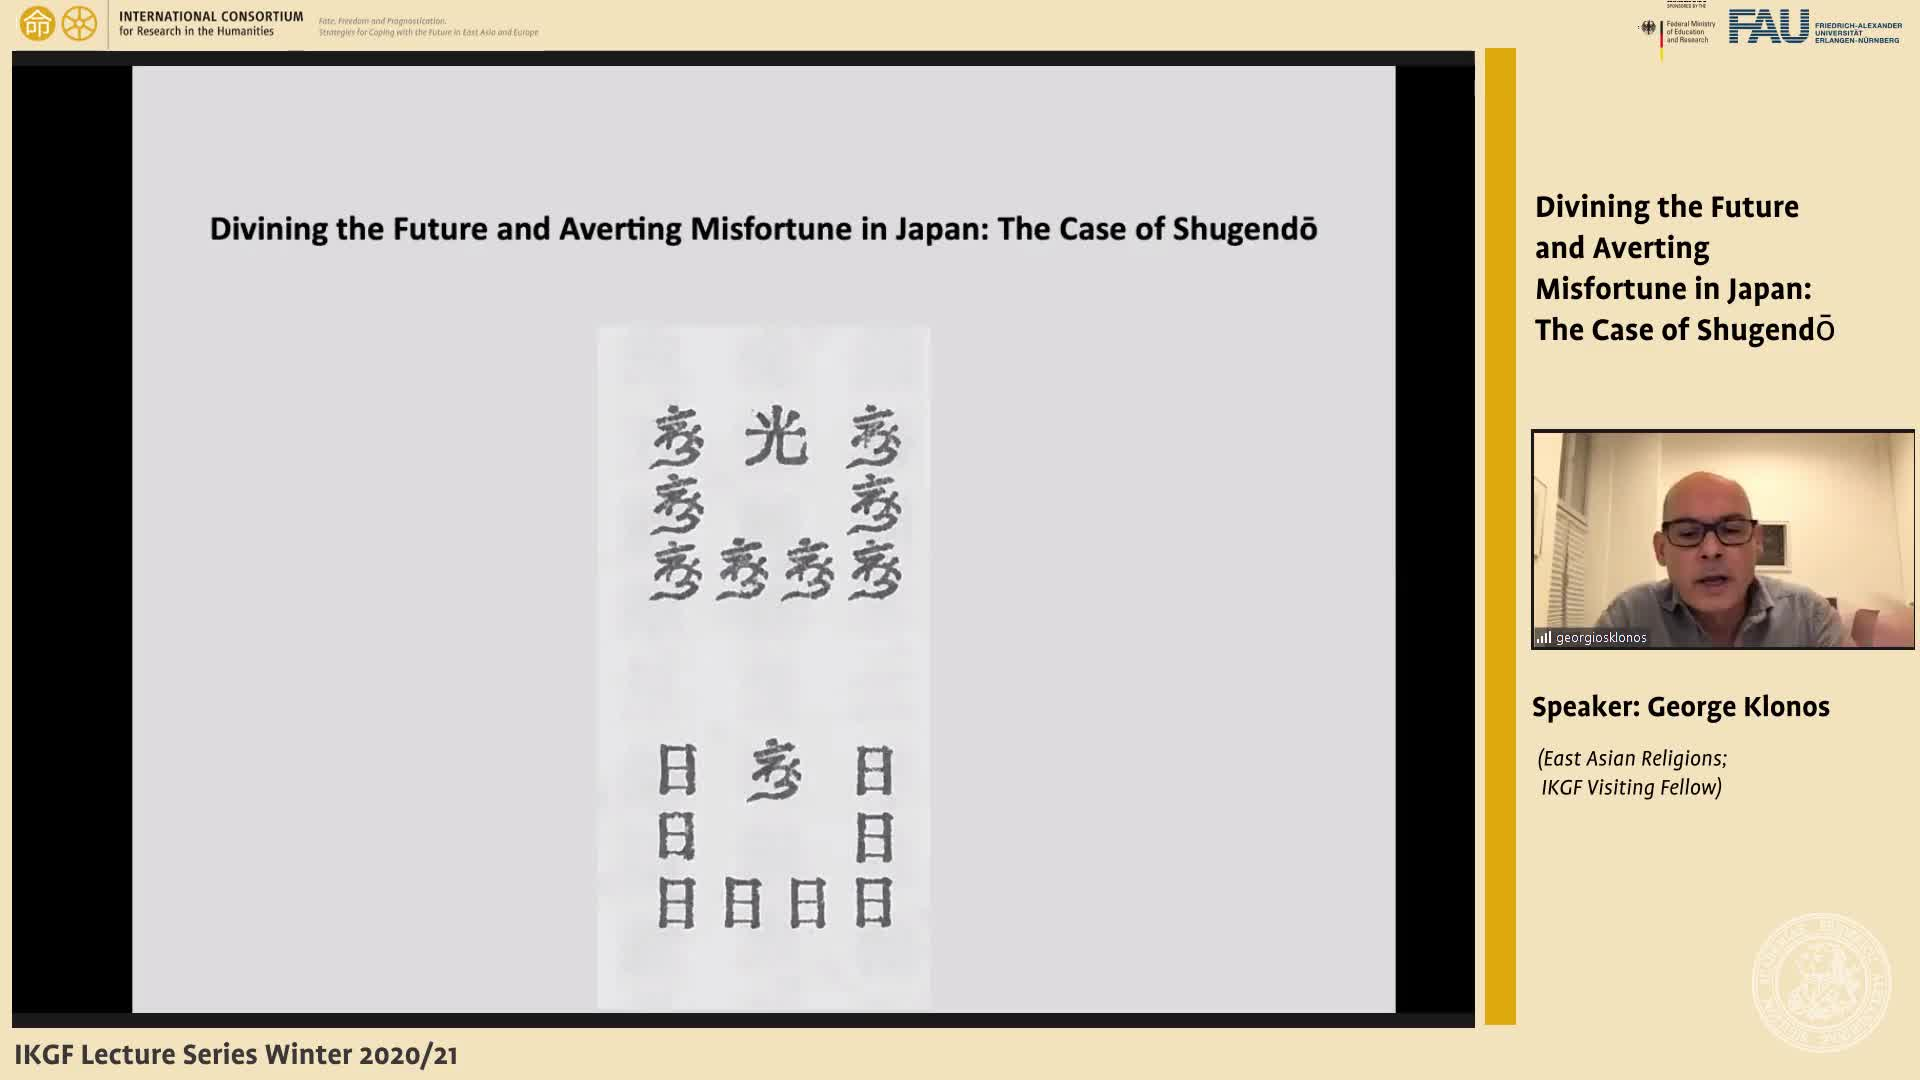 Divining the Future and Averting Misfortune in Japan: The Case of Shugendō preview image